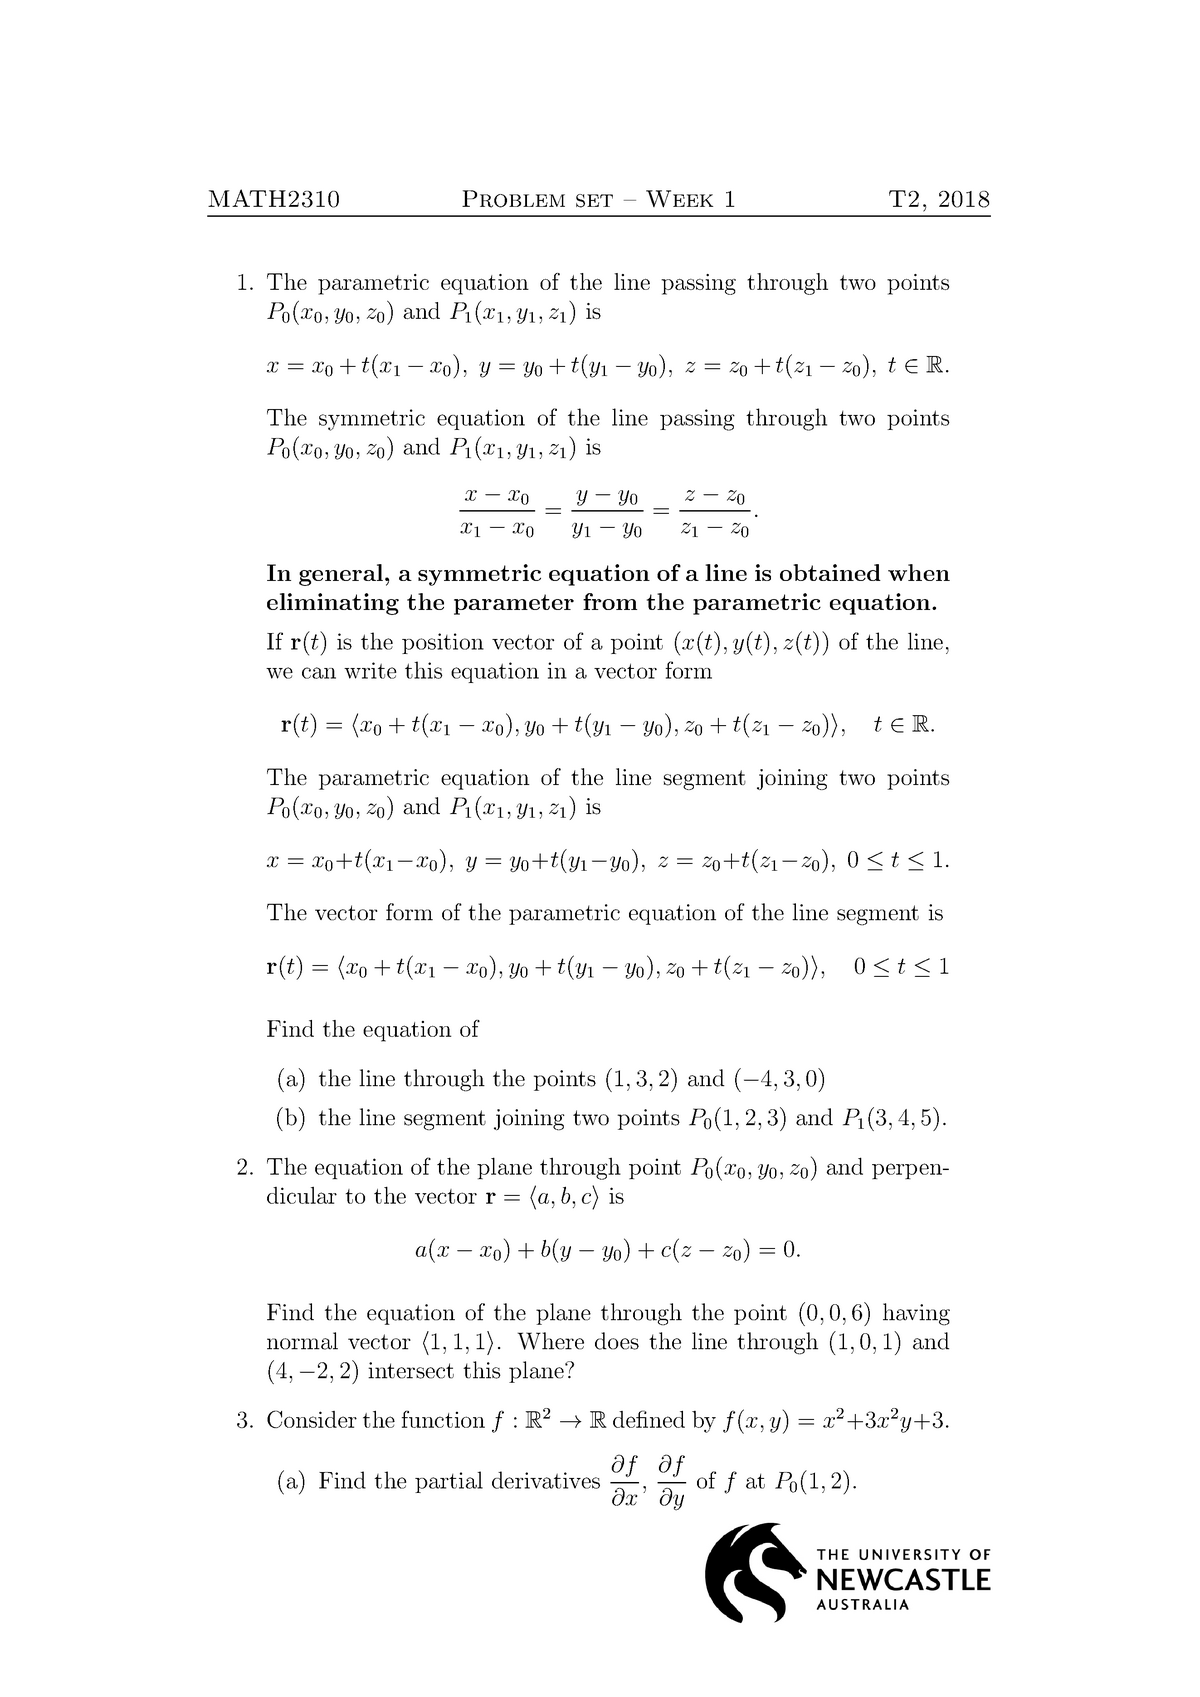 Problemset 1 Tutorials Math2310 Studocu Y > x so, with the help of statement 1, our original target question is (x+1)/(y+1) > x/y ? studocu